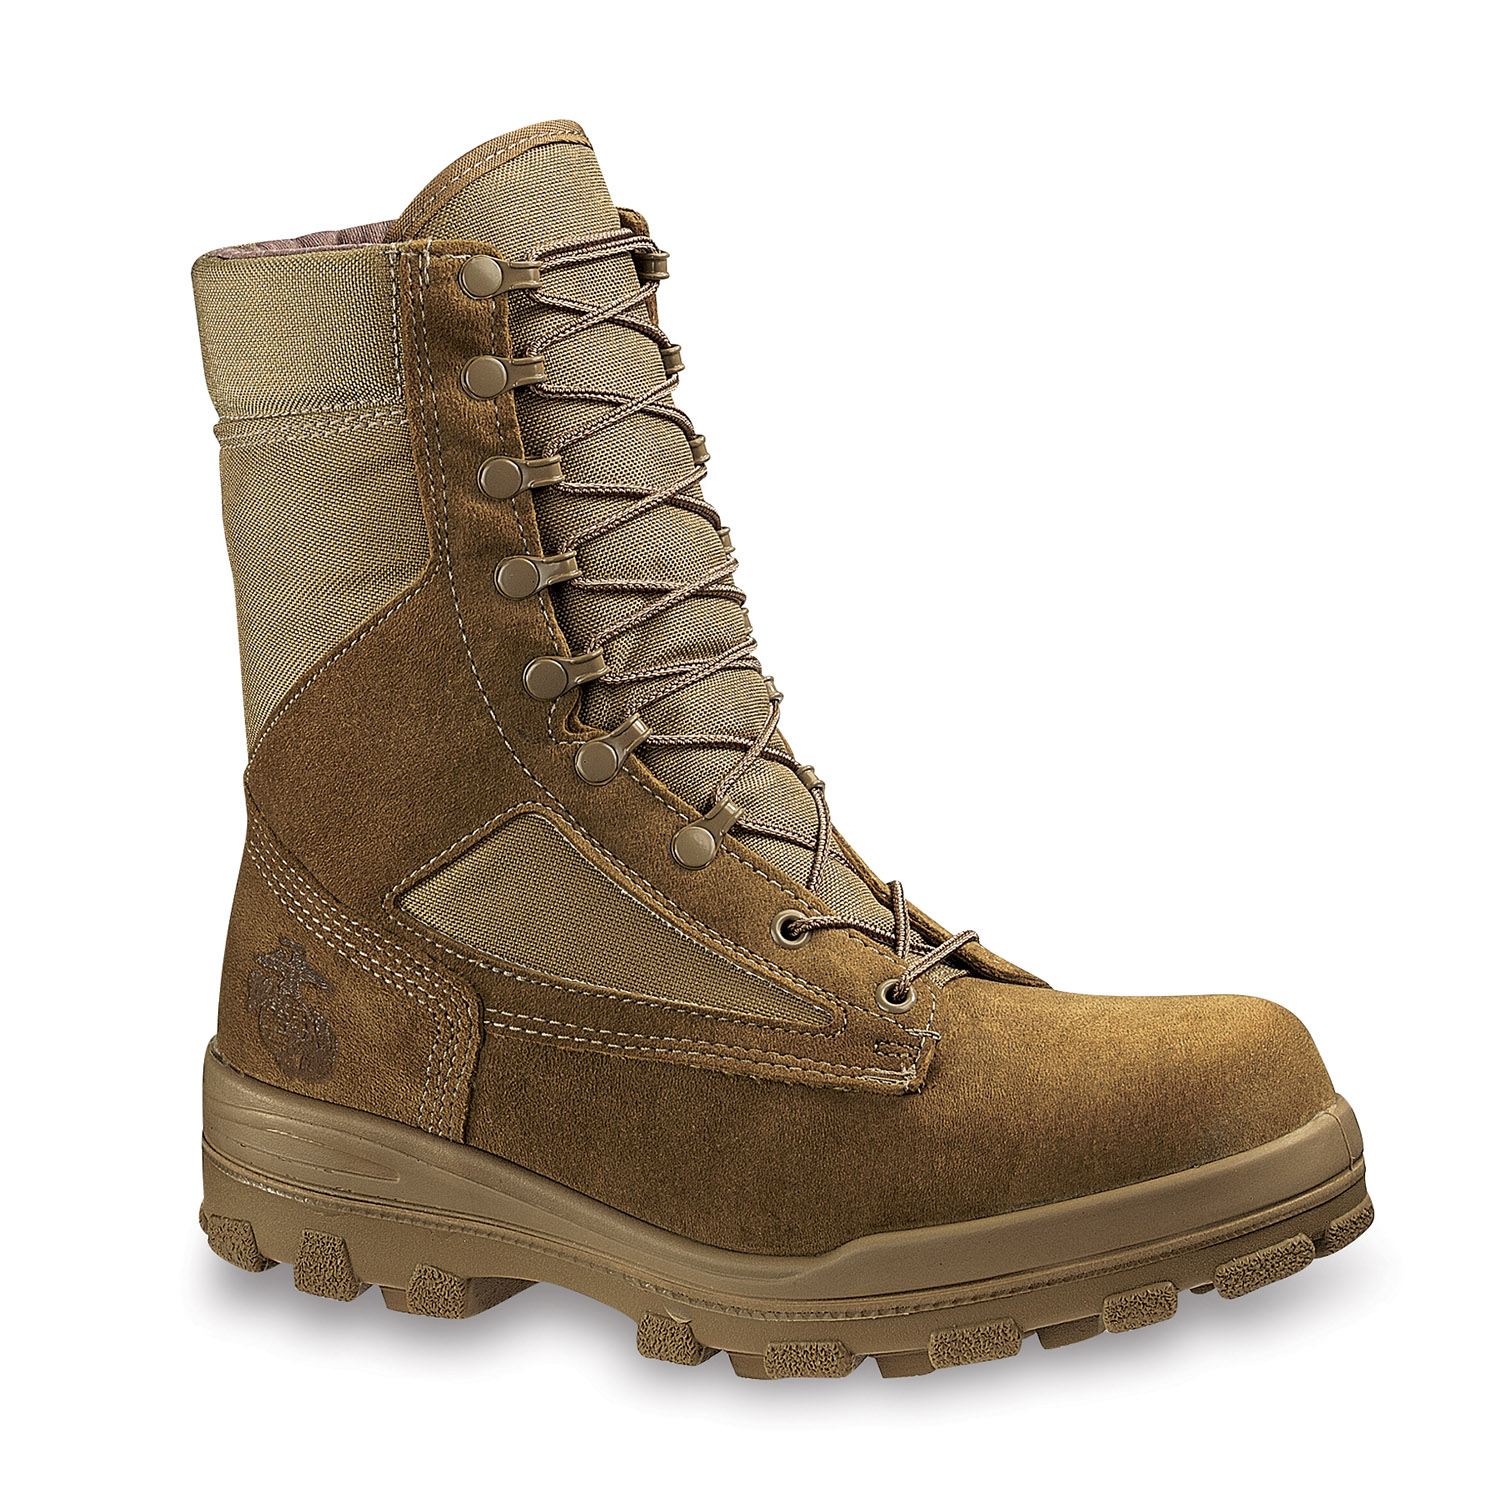 Bates USMC DuraShock Steel Toe Hot Weather Boot